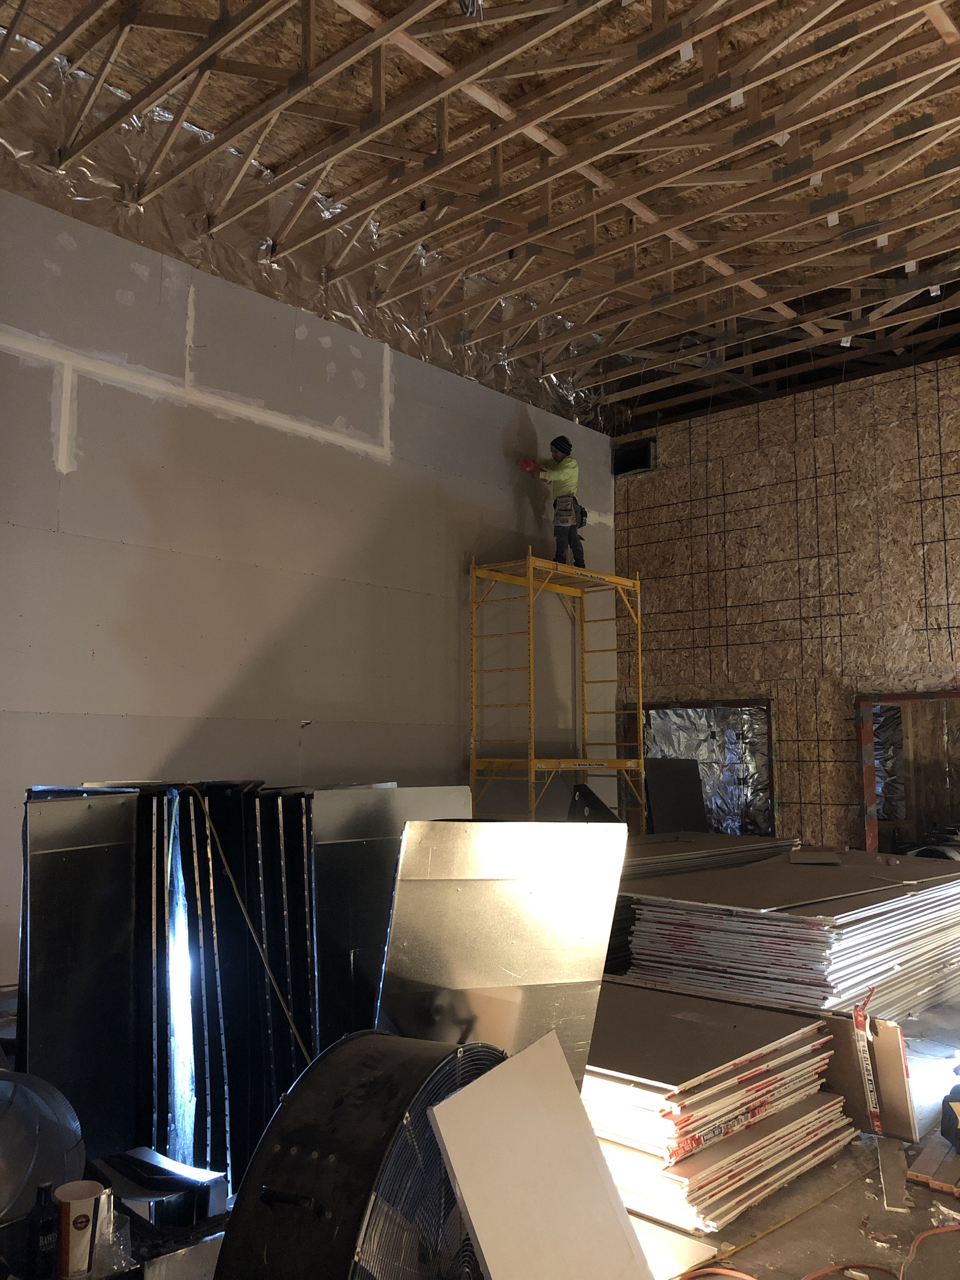 First layer going up in studio 1. You can see the hvac duct coming through the top of the wall above the iso booth door. The ceiling will hang just above that duct.